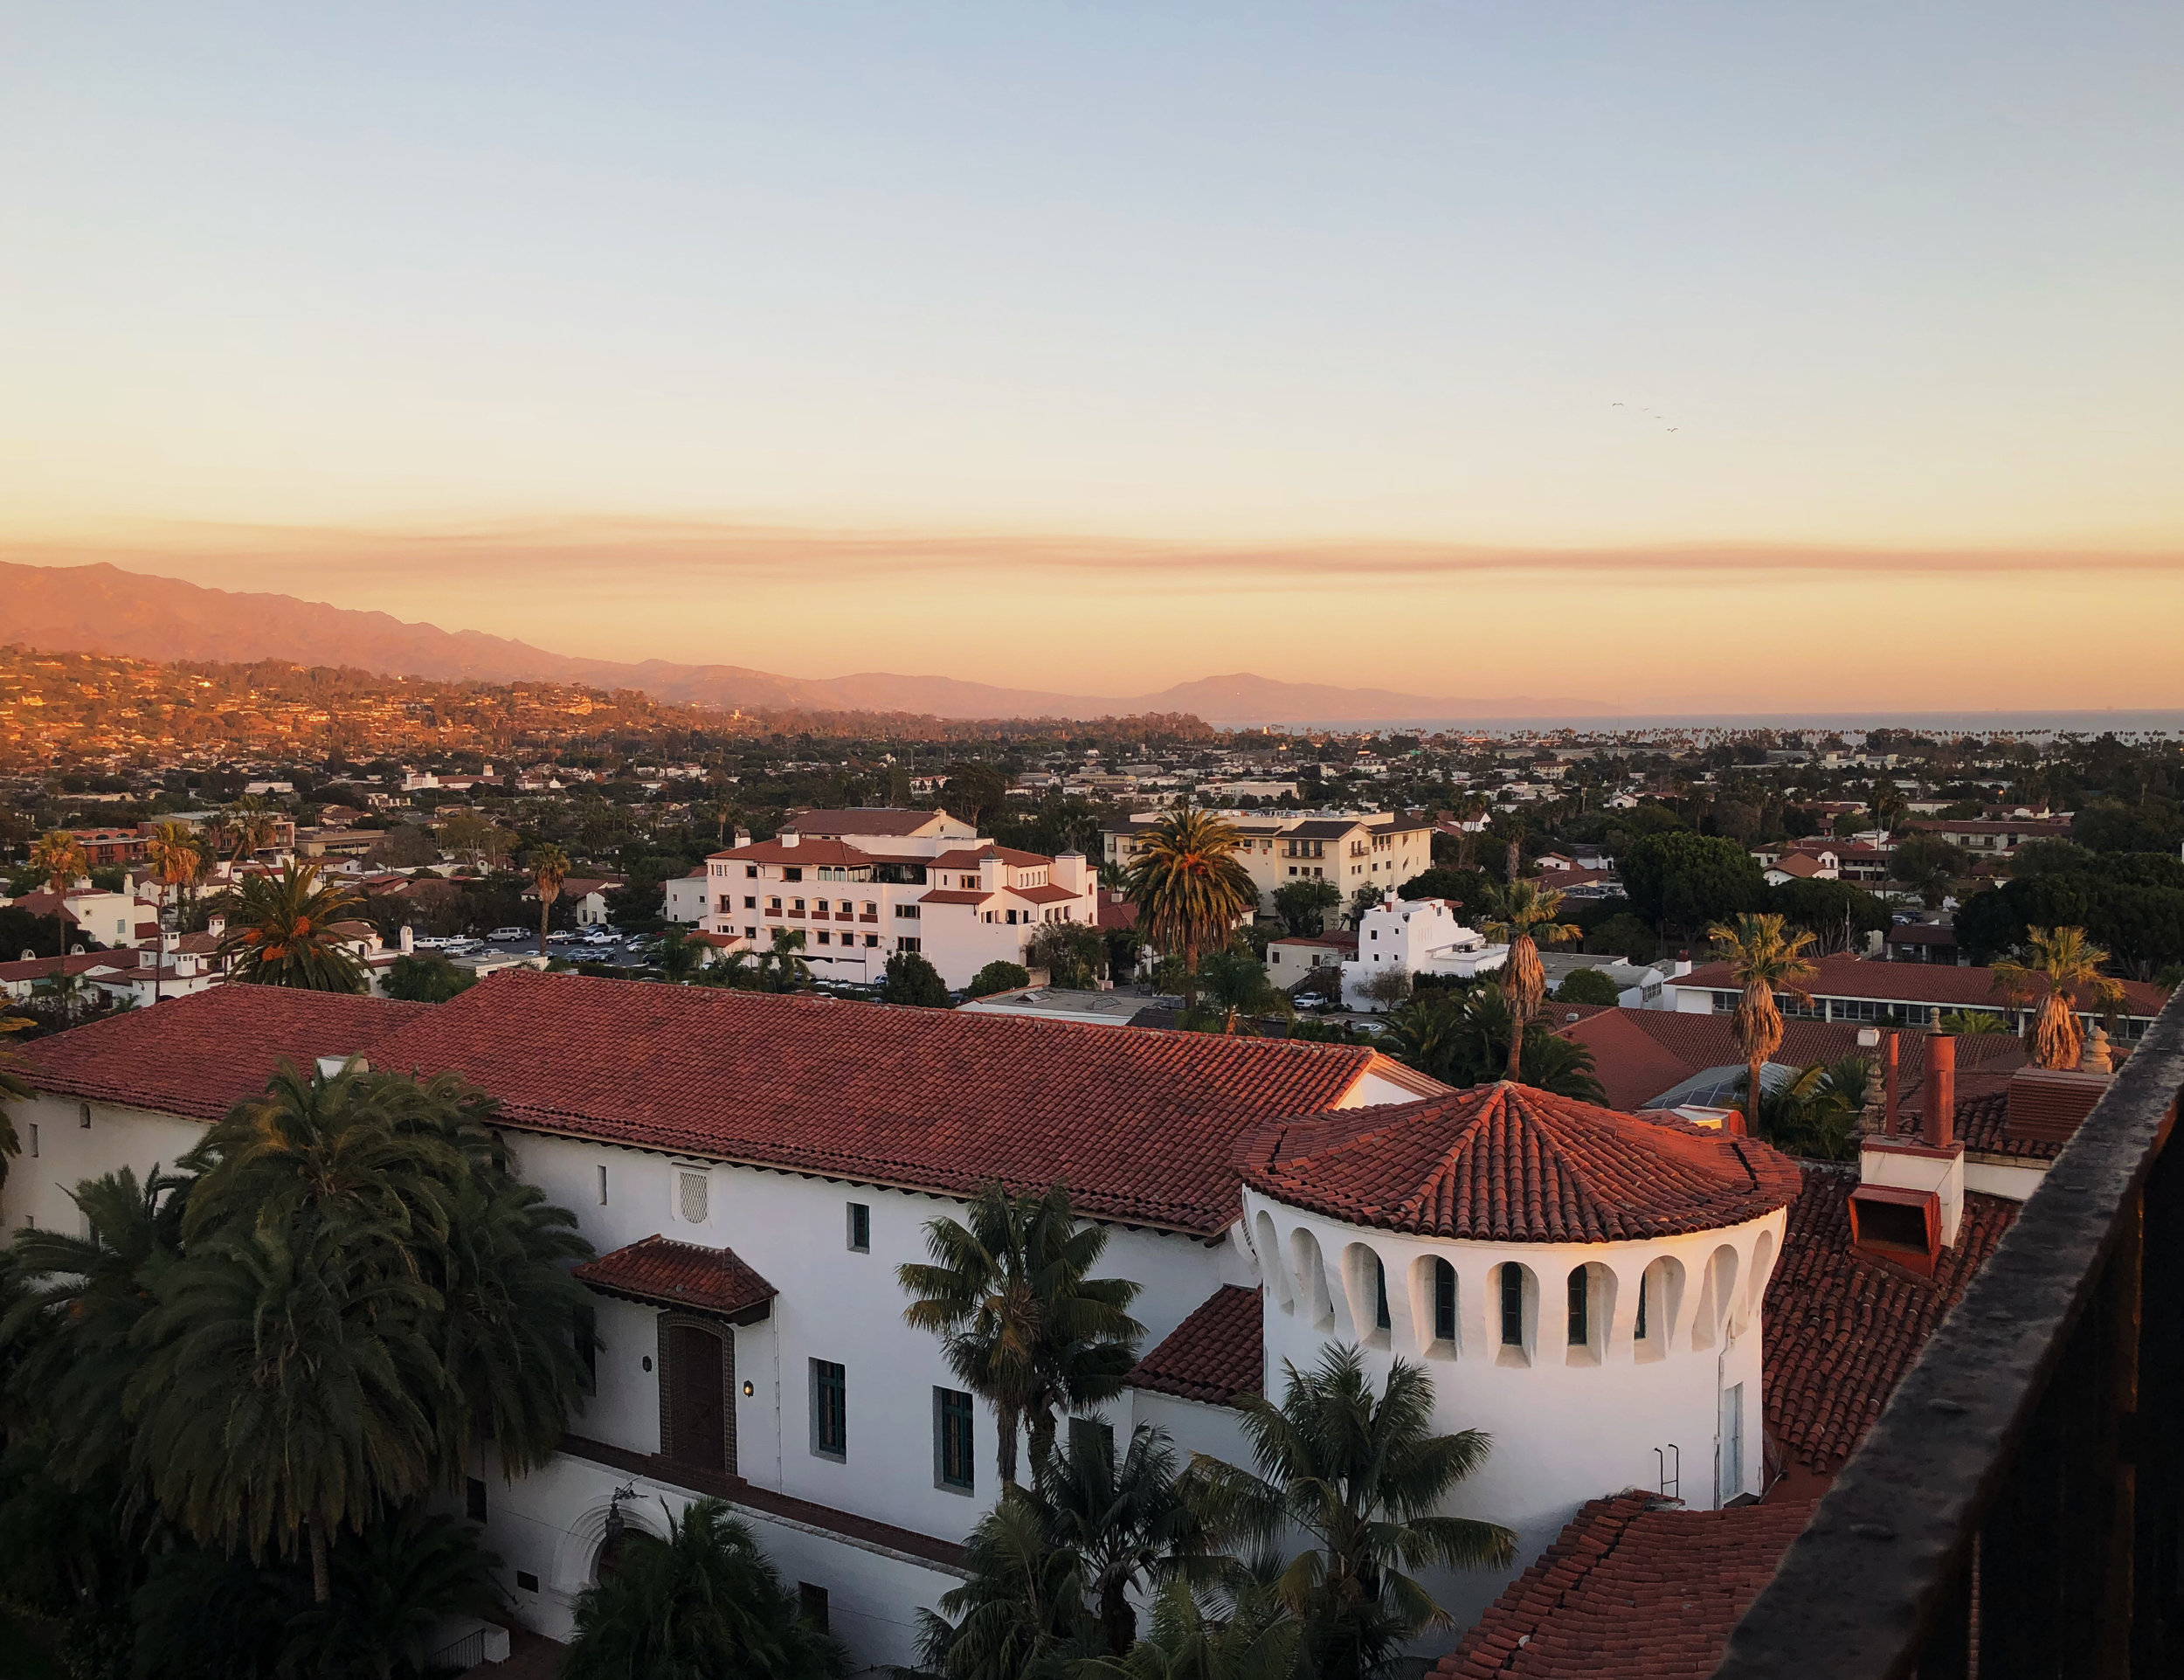 My practice - Located in beautiful downtown Santa Barbara, we are located next to cafe's, restaurants, the beach and parking.